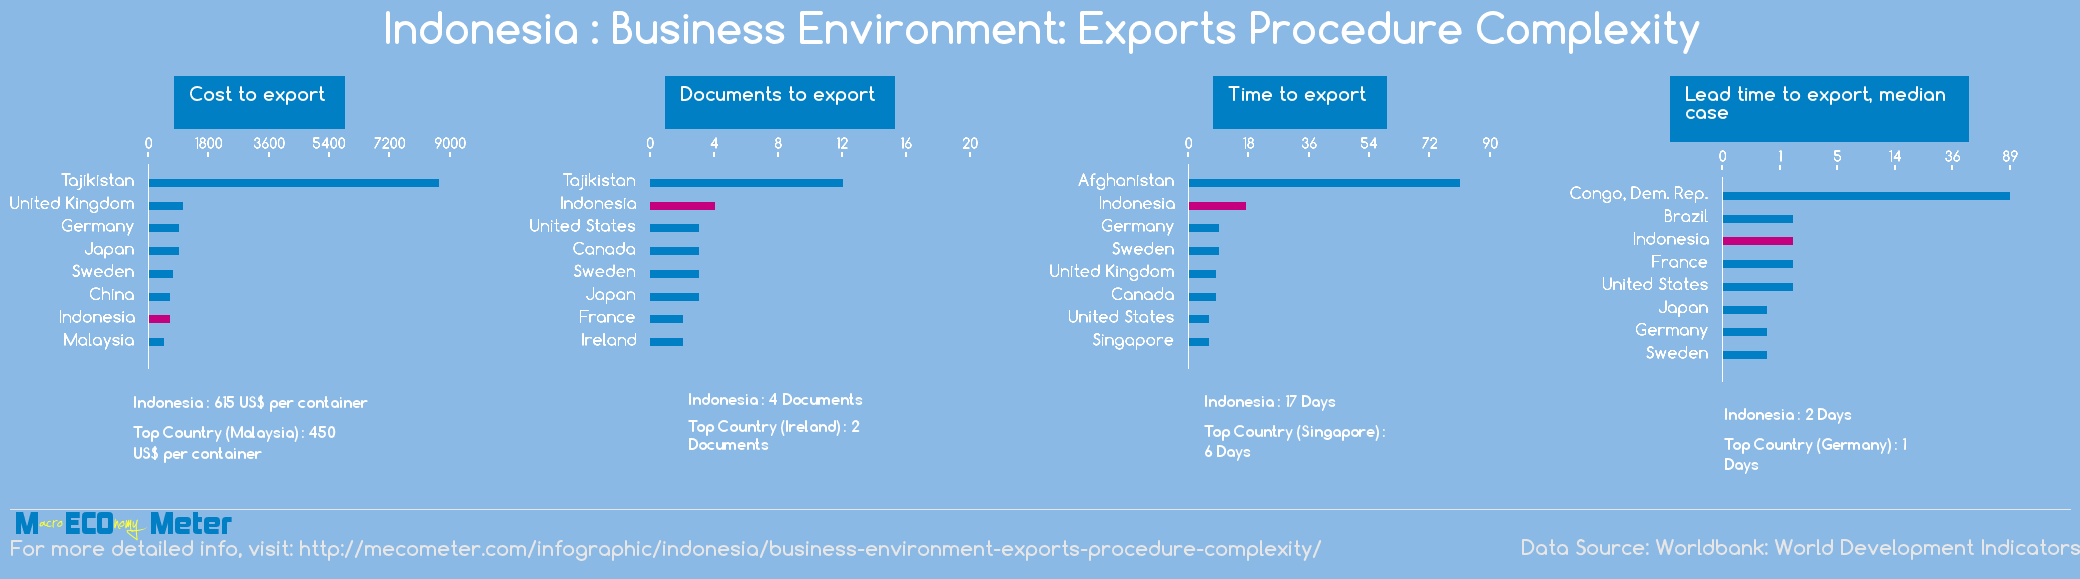 Indonesia : Business Environment: Exports Procedure Complexity